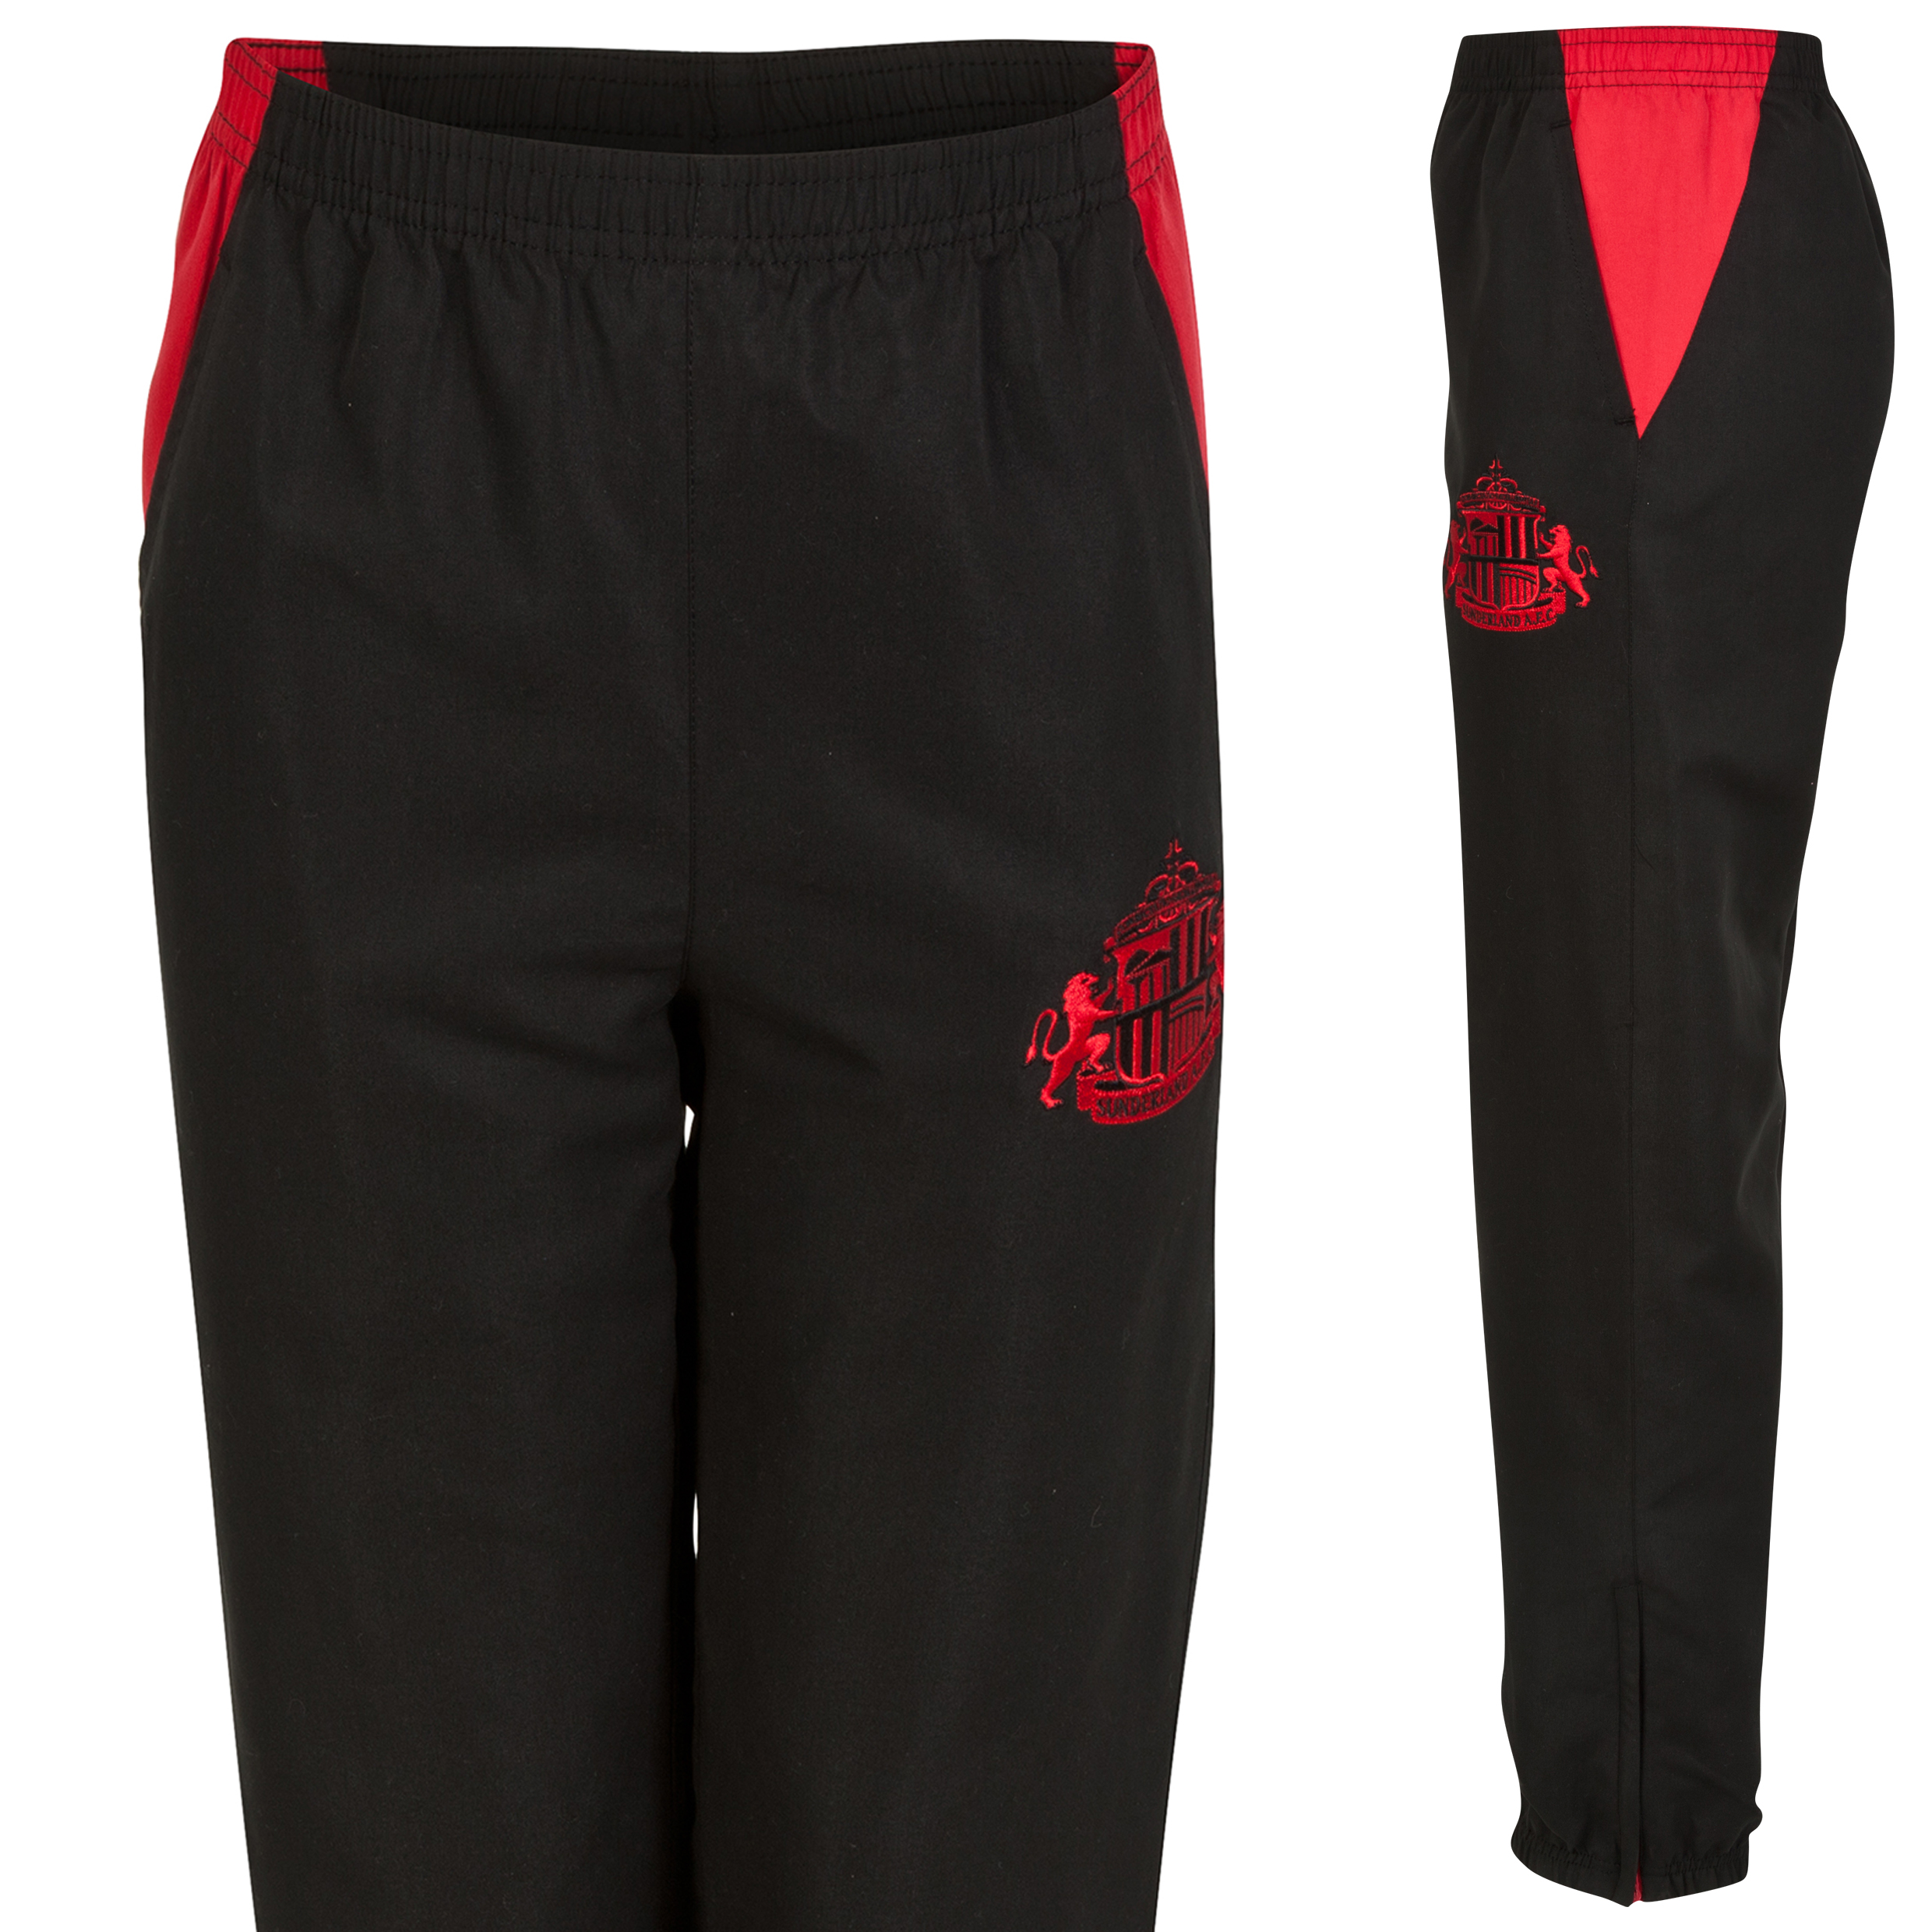 Sunderland Essential Track Pants - Black - Older Boys